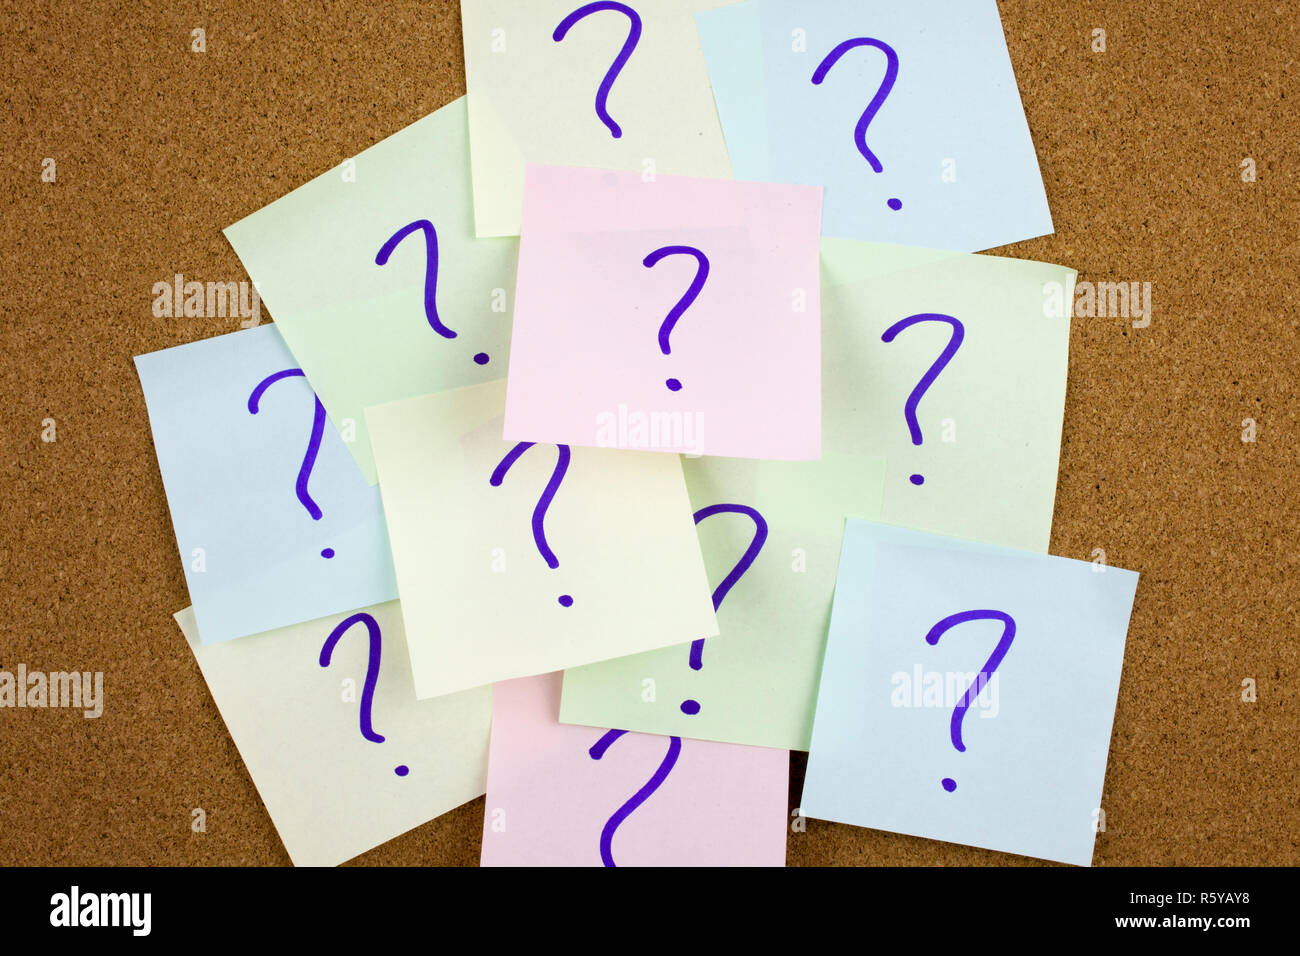 A yellow sticky note writing, caption, inscription Pile of colorful paper notes with question marks. Closeup. Stock Photo